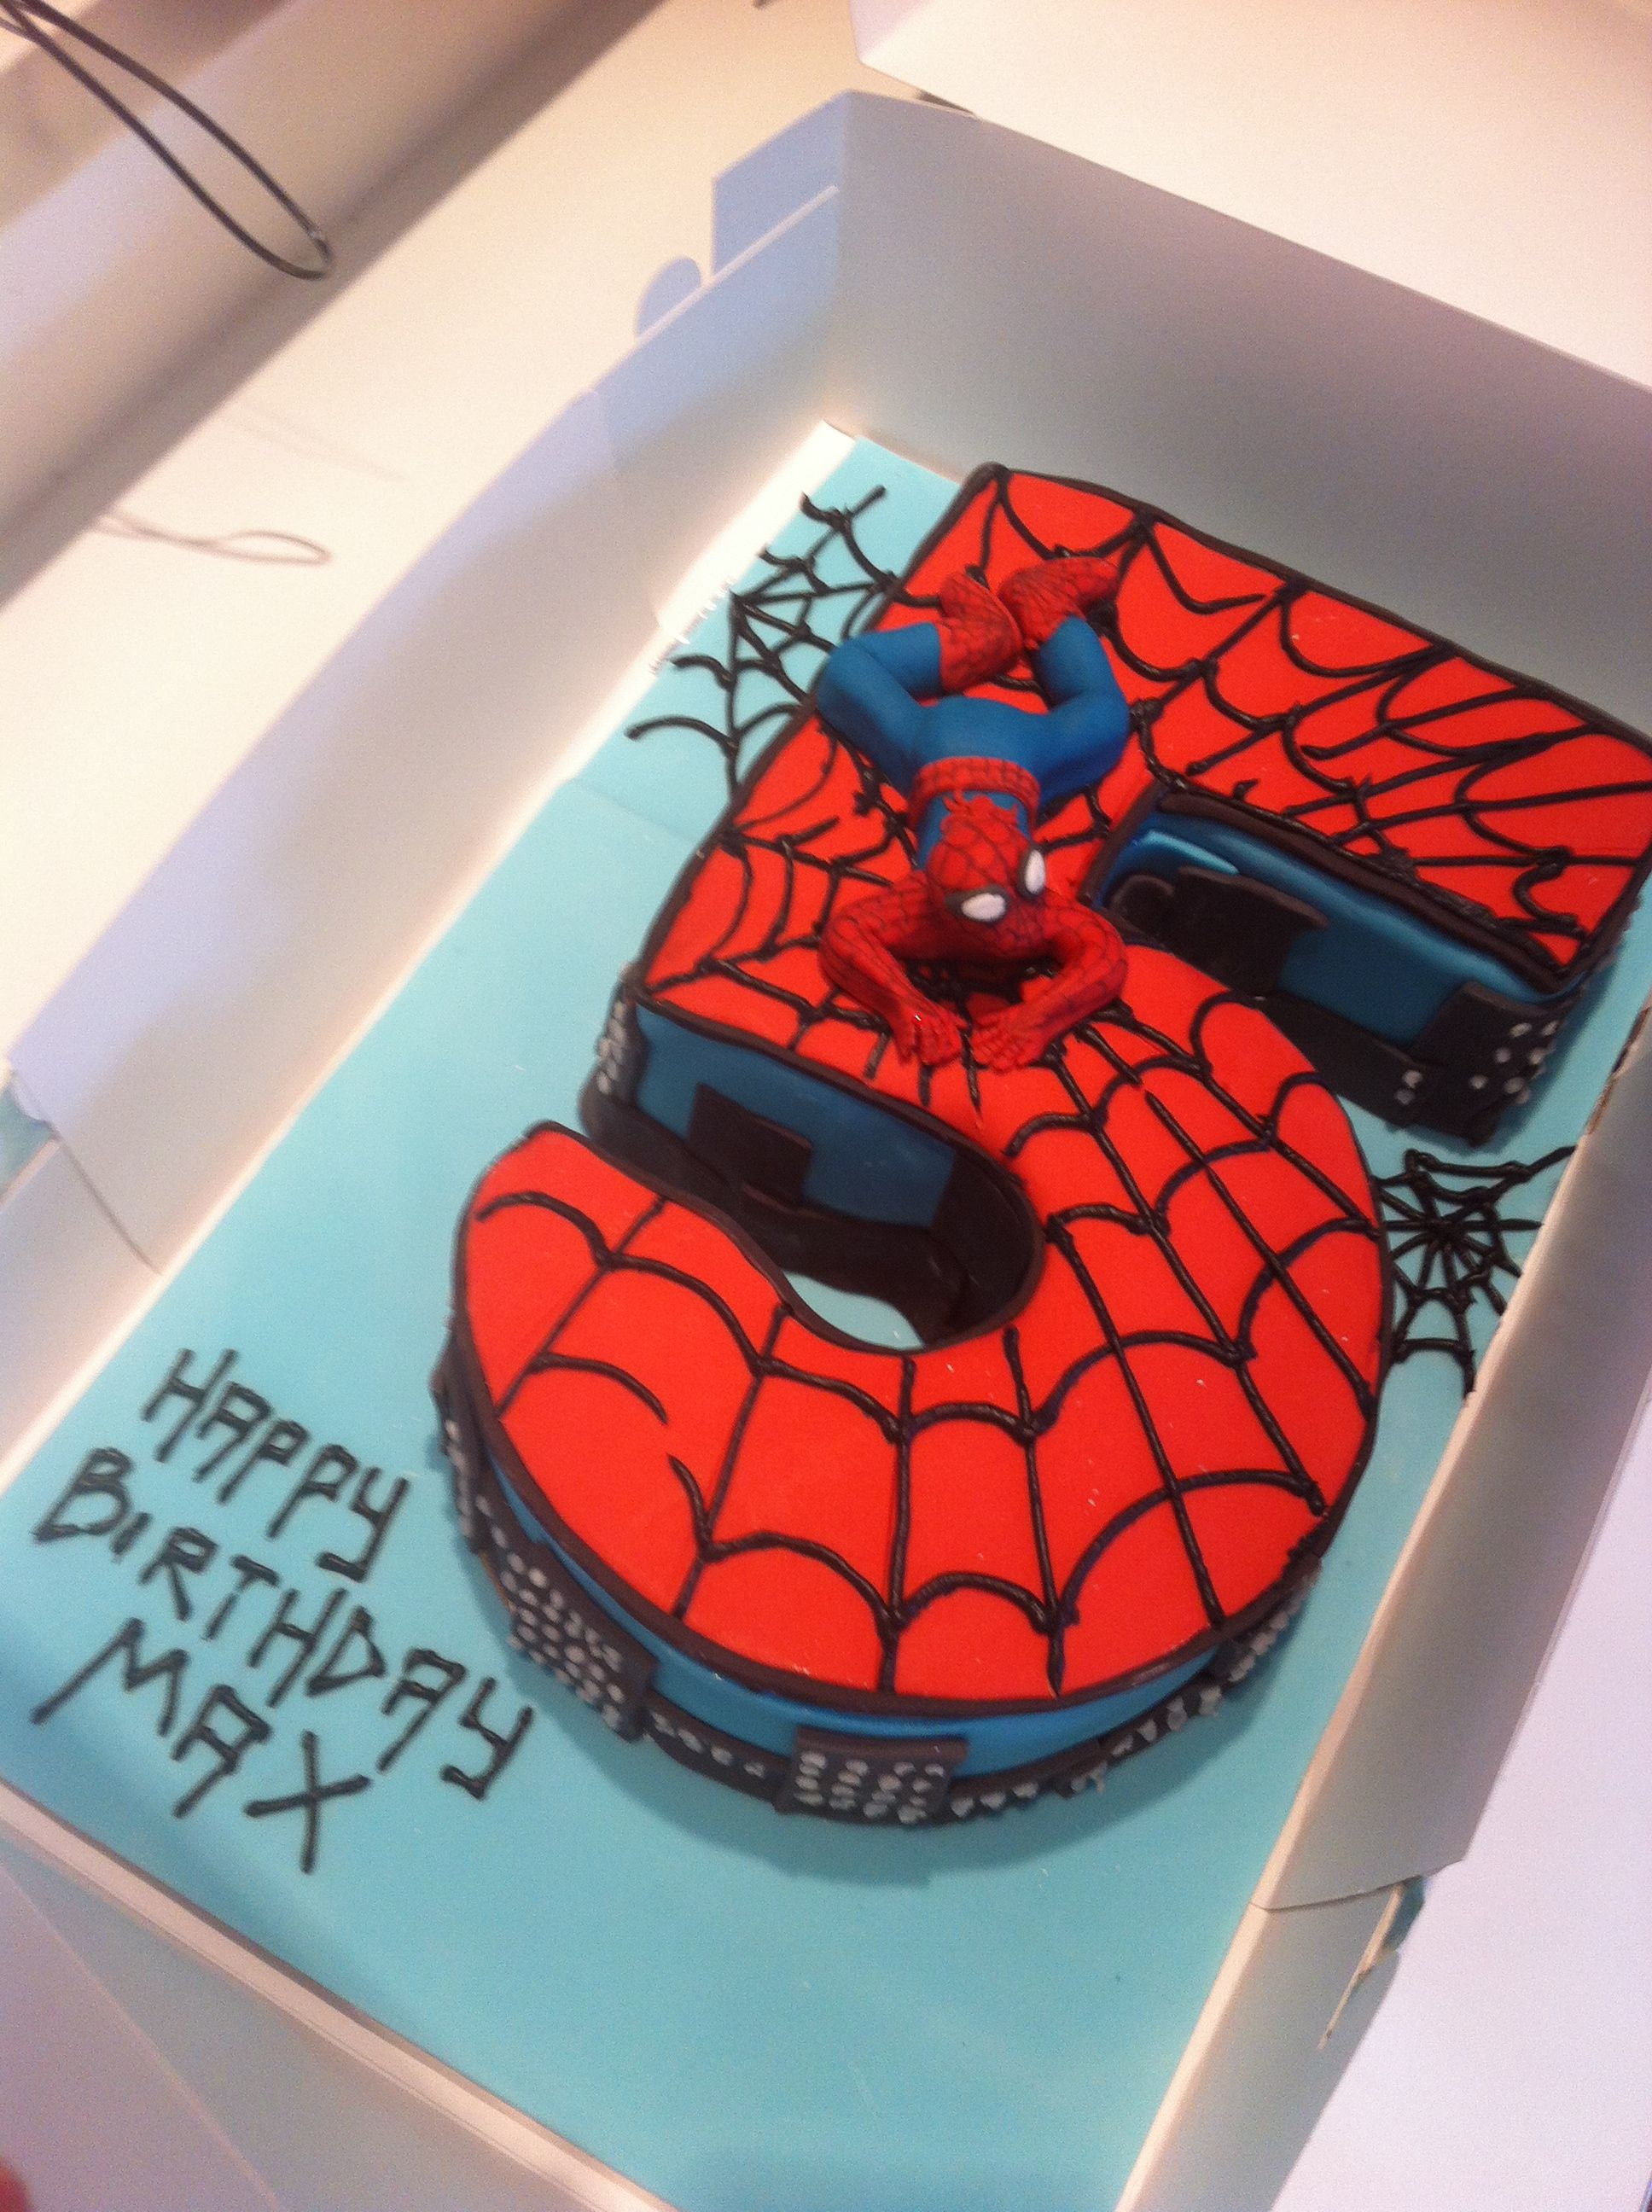 Spider Man Cake 10 Birthday Cake Spiderman Birthday Cake